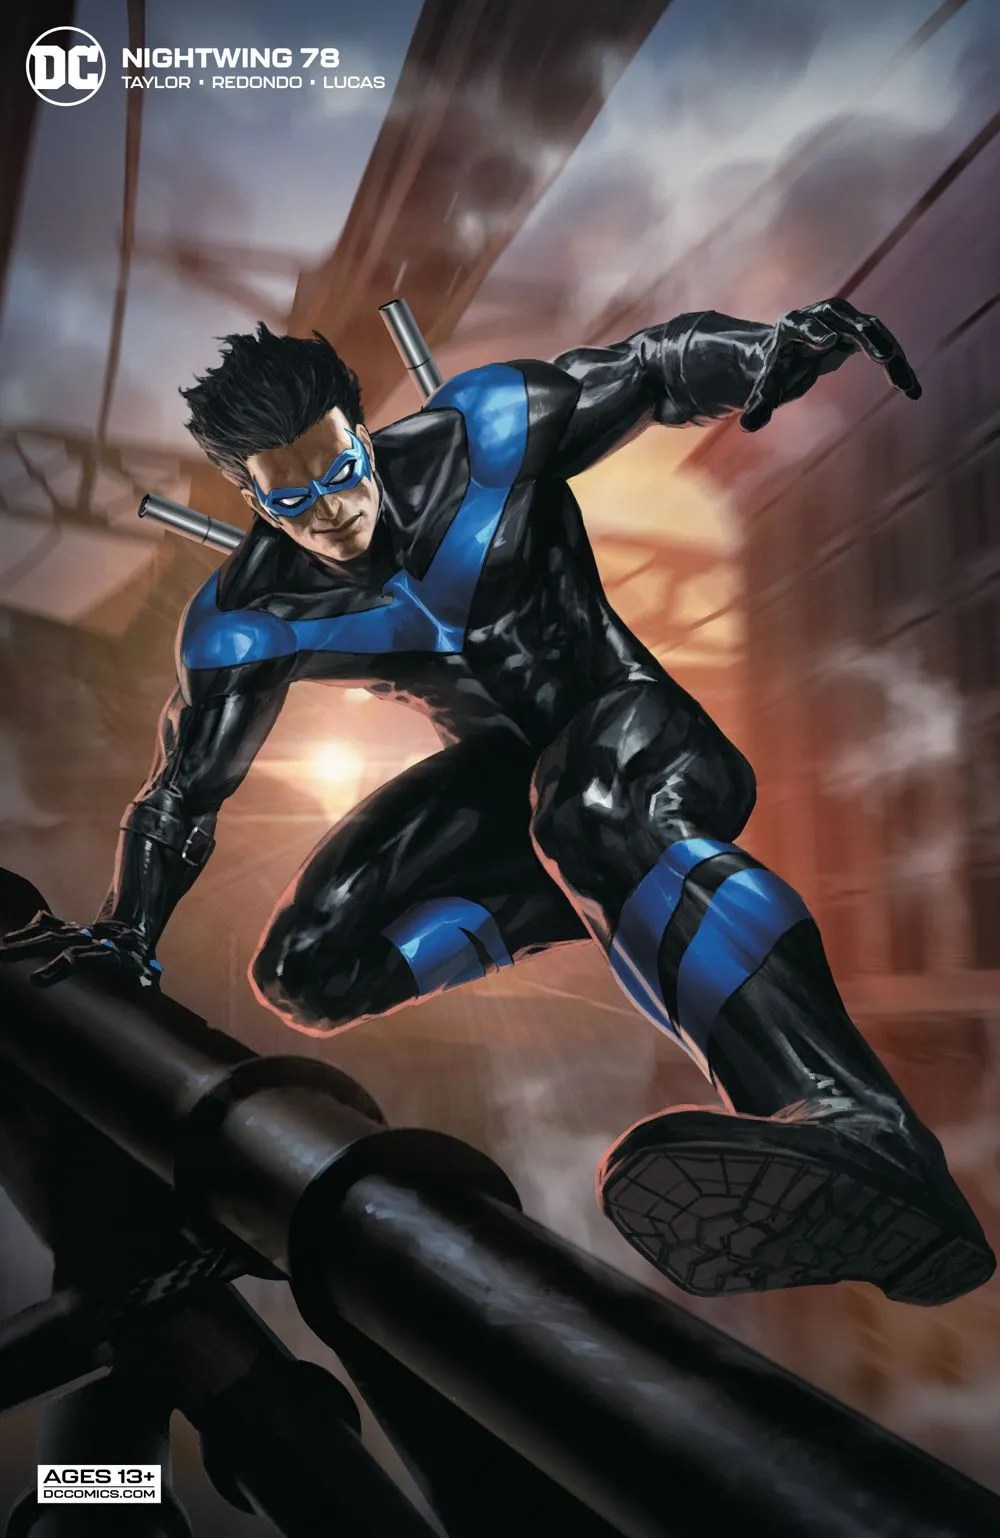 NTW_78-2_604ada5907e1f9.62983942 First Look at DC Comics' NIGHTWING #78